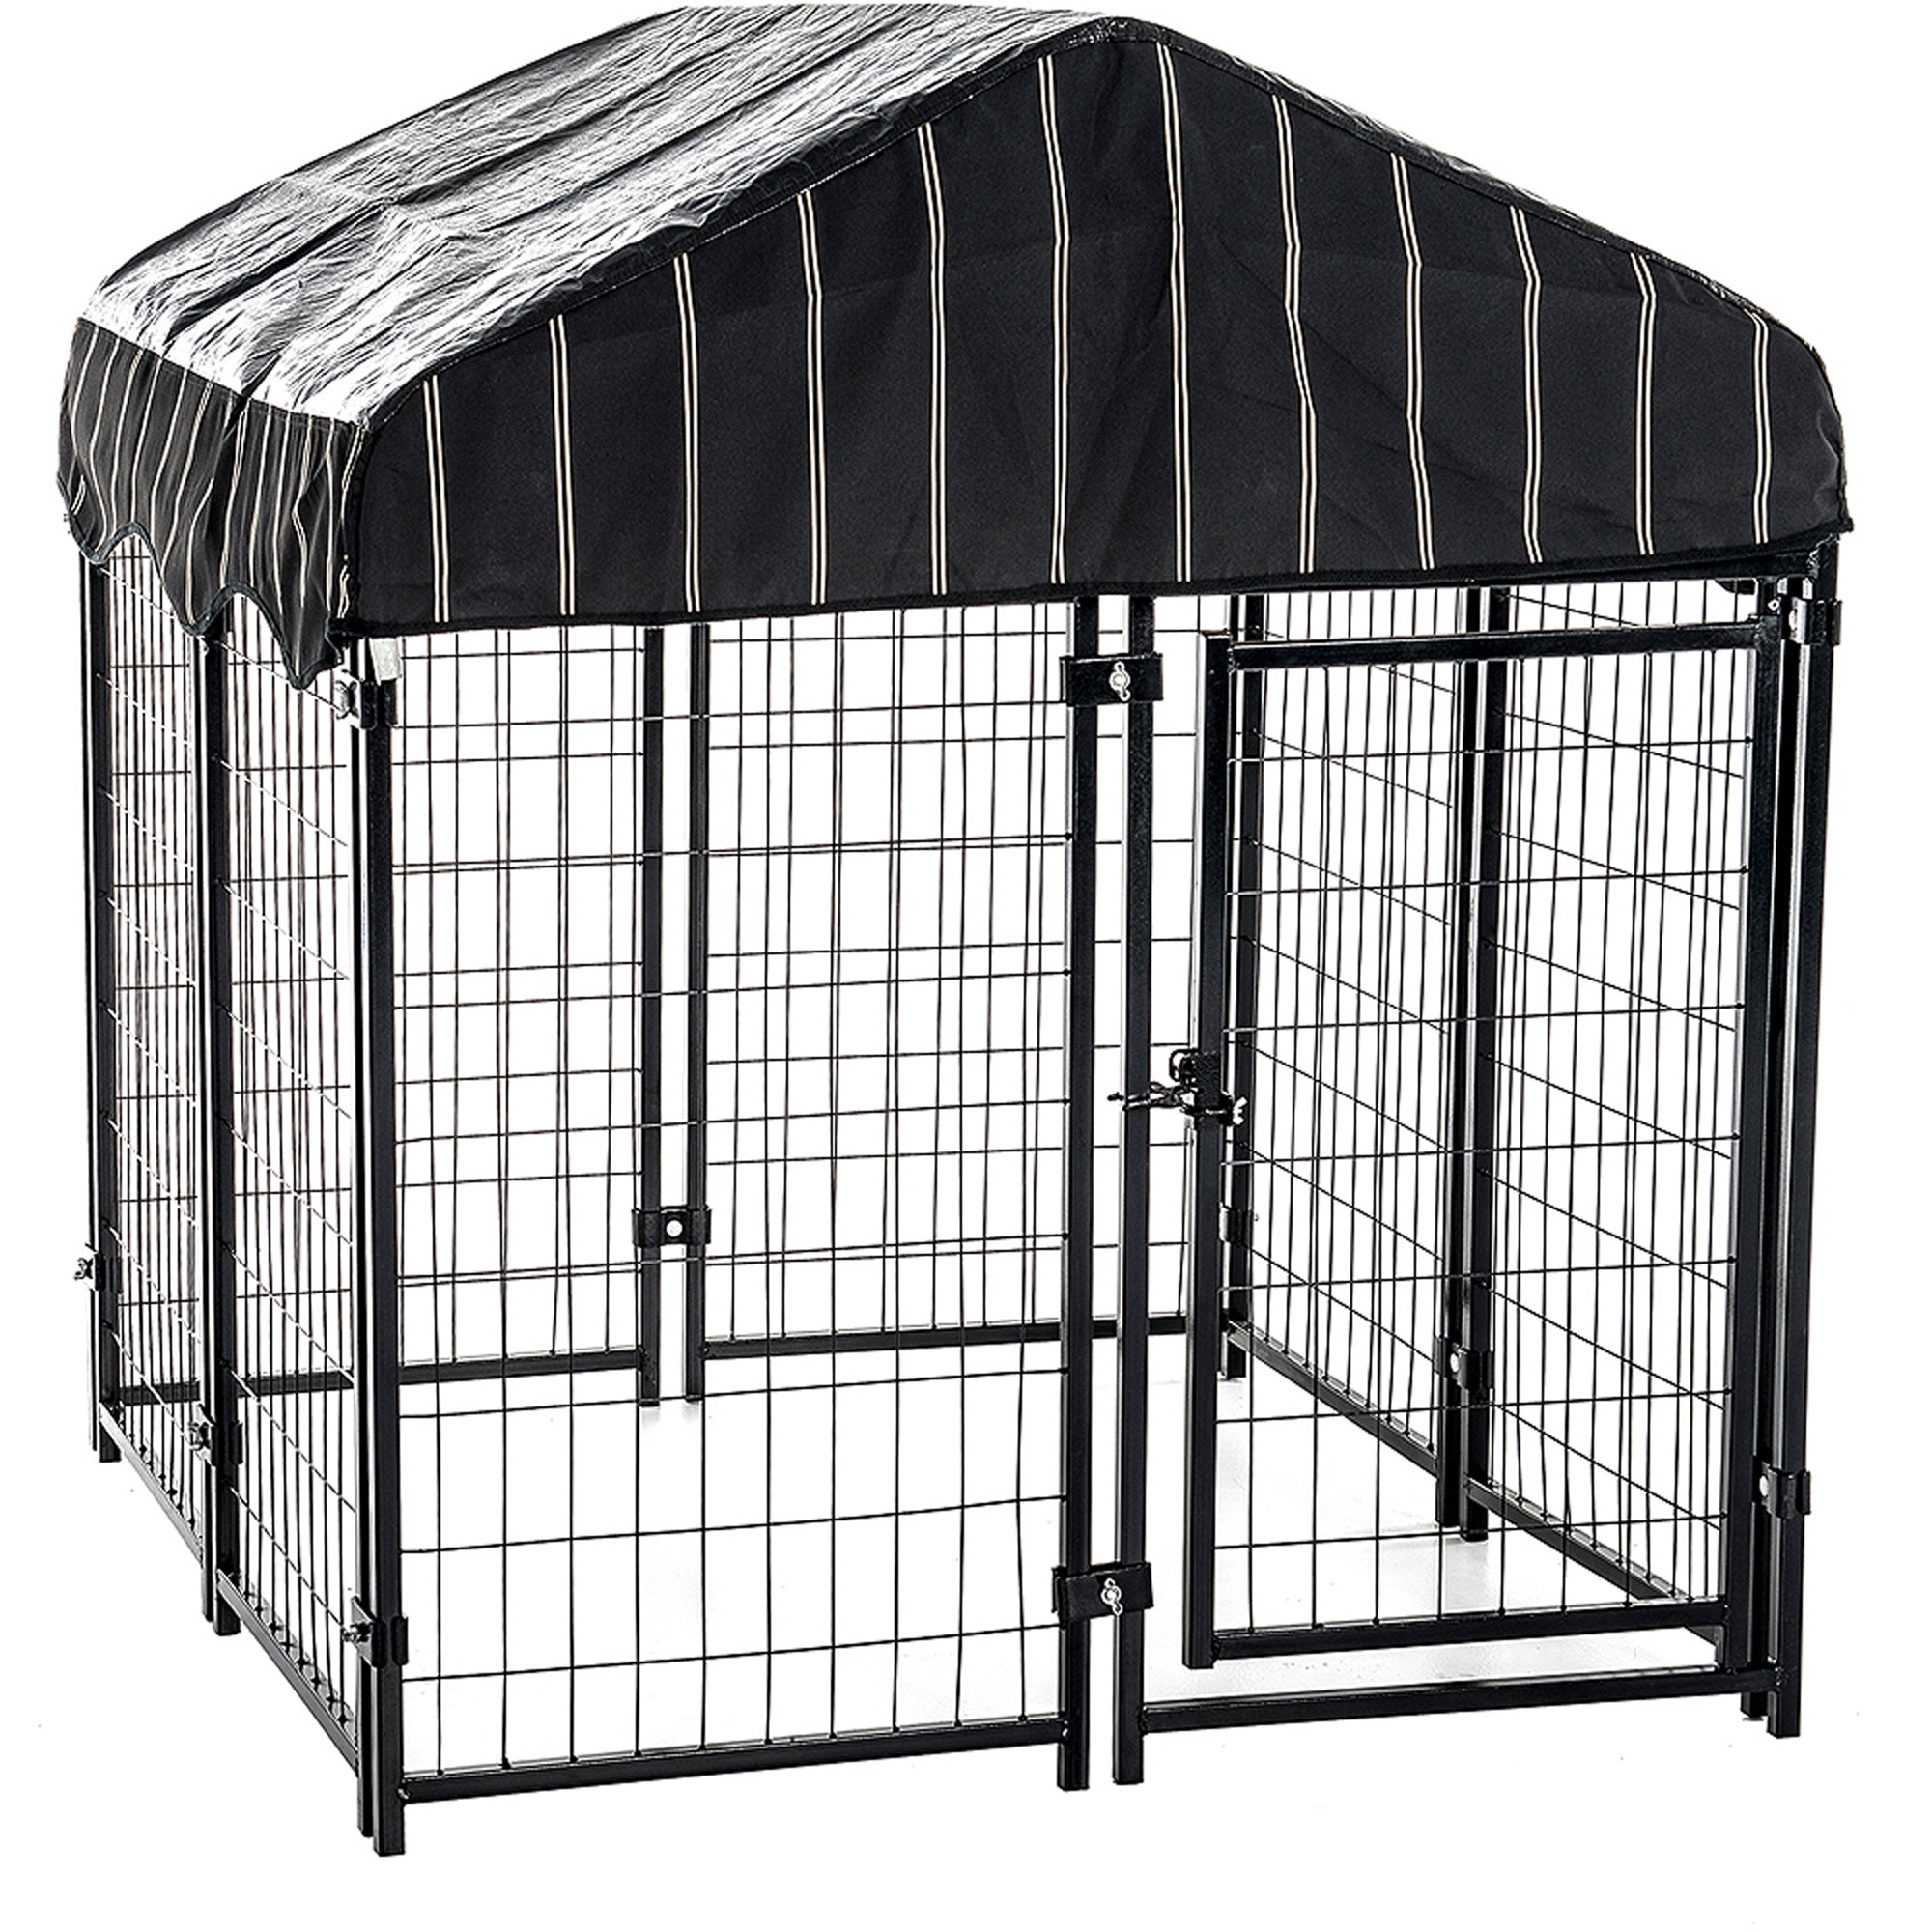 Outdoor Pet Cage Dog Kennel Steel Wire Pen Run House Covered Shade ...